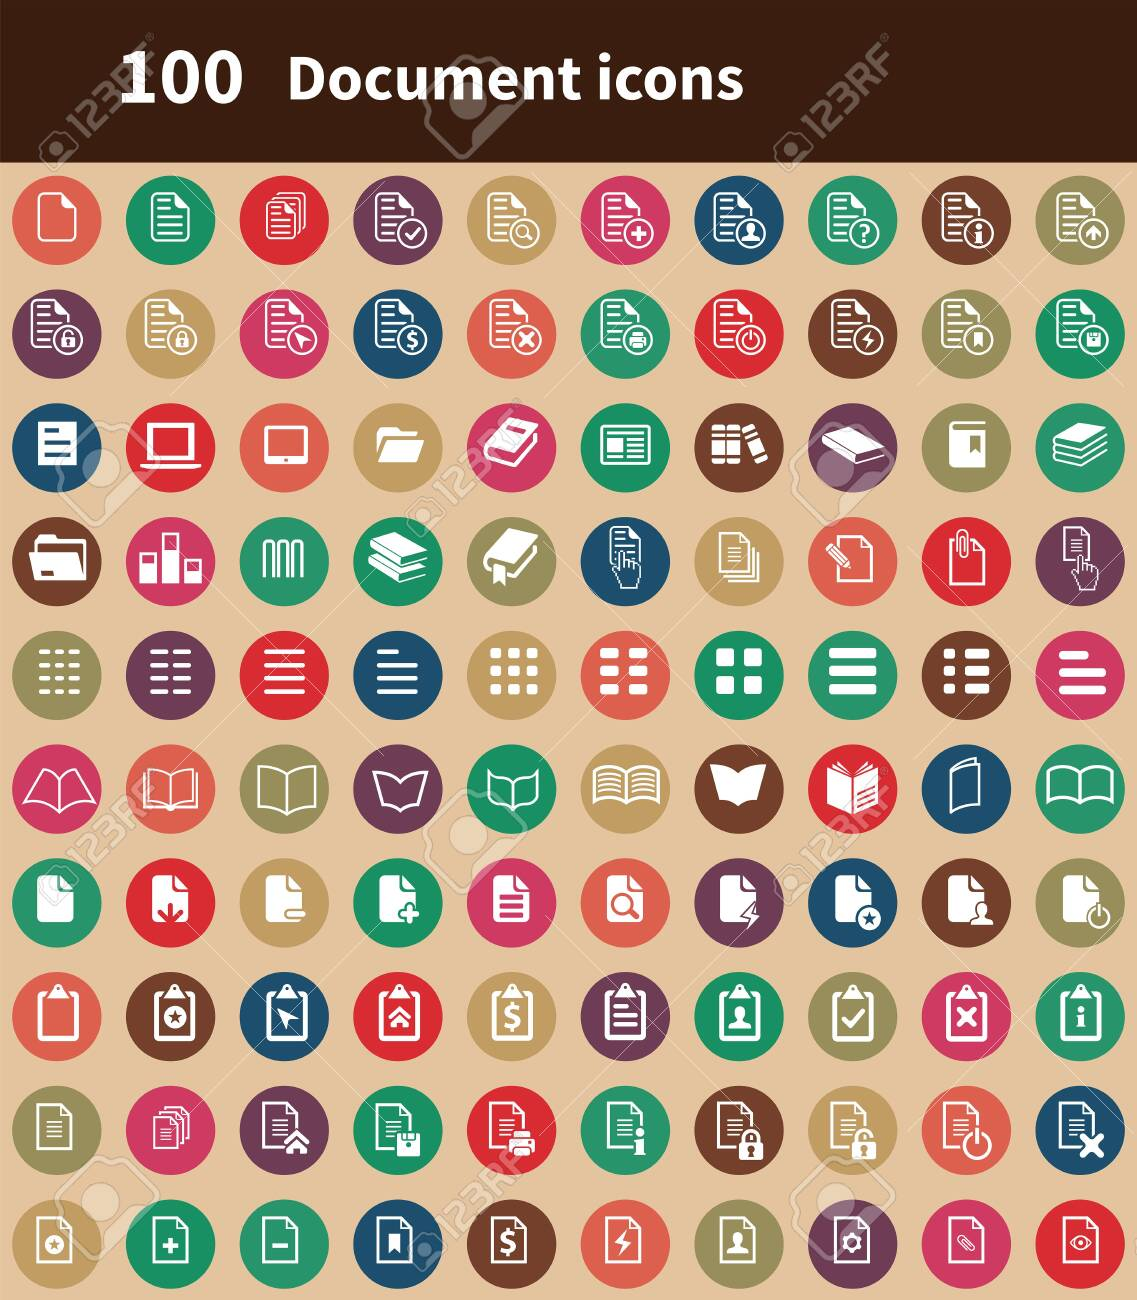 document 100 icons universal set for web and UI - 130458813